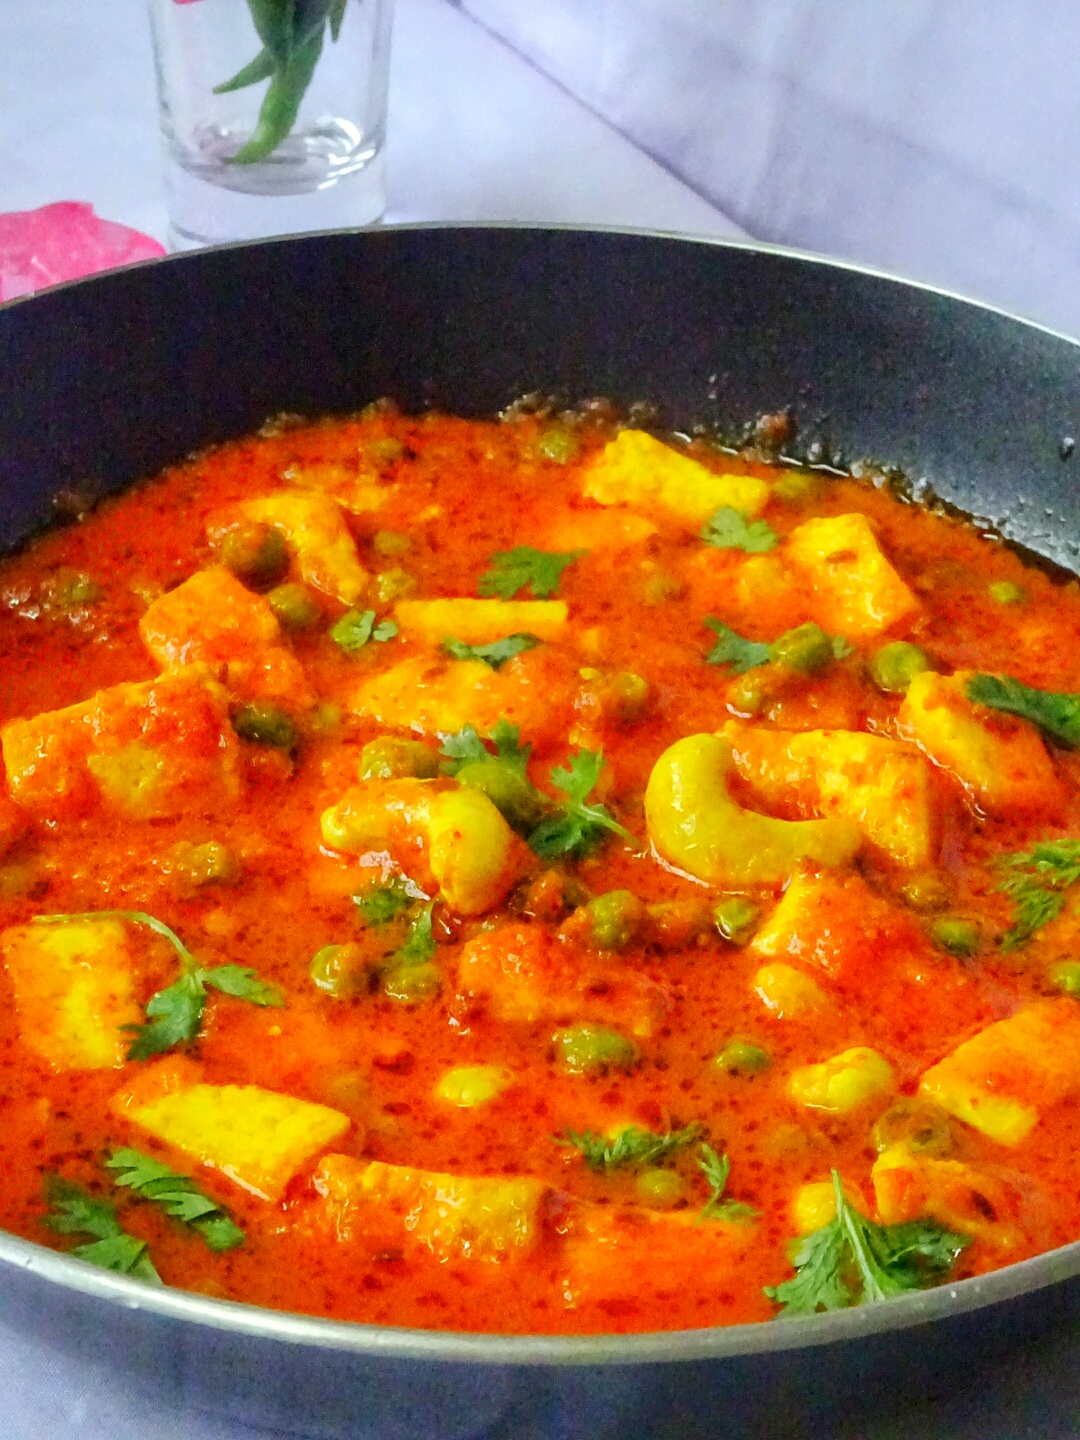 Veg indian cooking matar paneer recipe how to make matar paneer peas and cottage cheese in tomato gravy easy quick mutter paneer recipe no onion no garlic matar paneer recipe forumfinder Choice Image